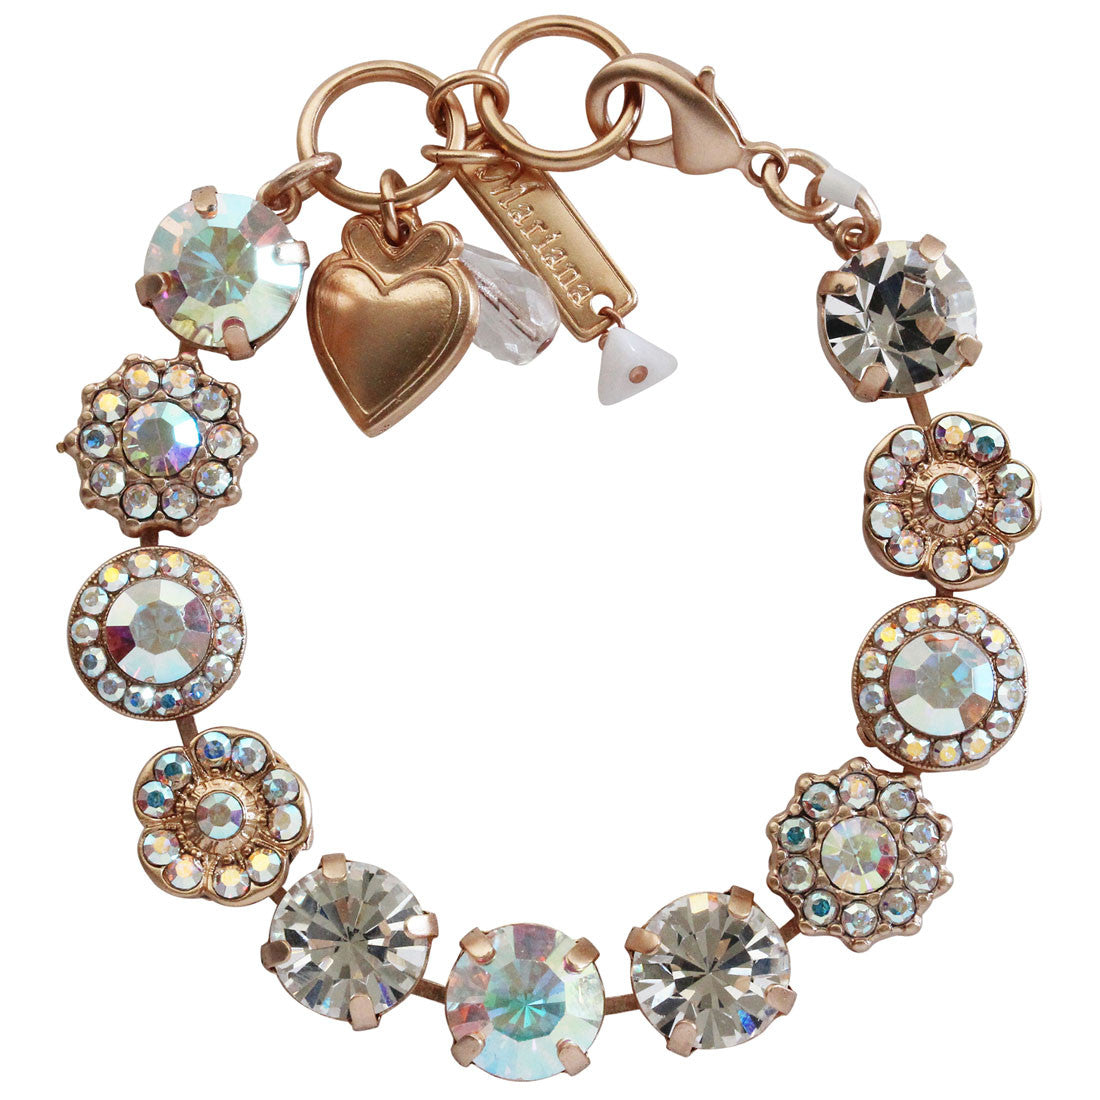 "Mariana Rose Gold Plated Large Flower Shapes Swarovski Crystal Bracelet, 7"" Crystal AB 4084 001ABrg"